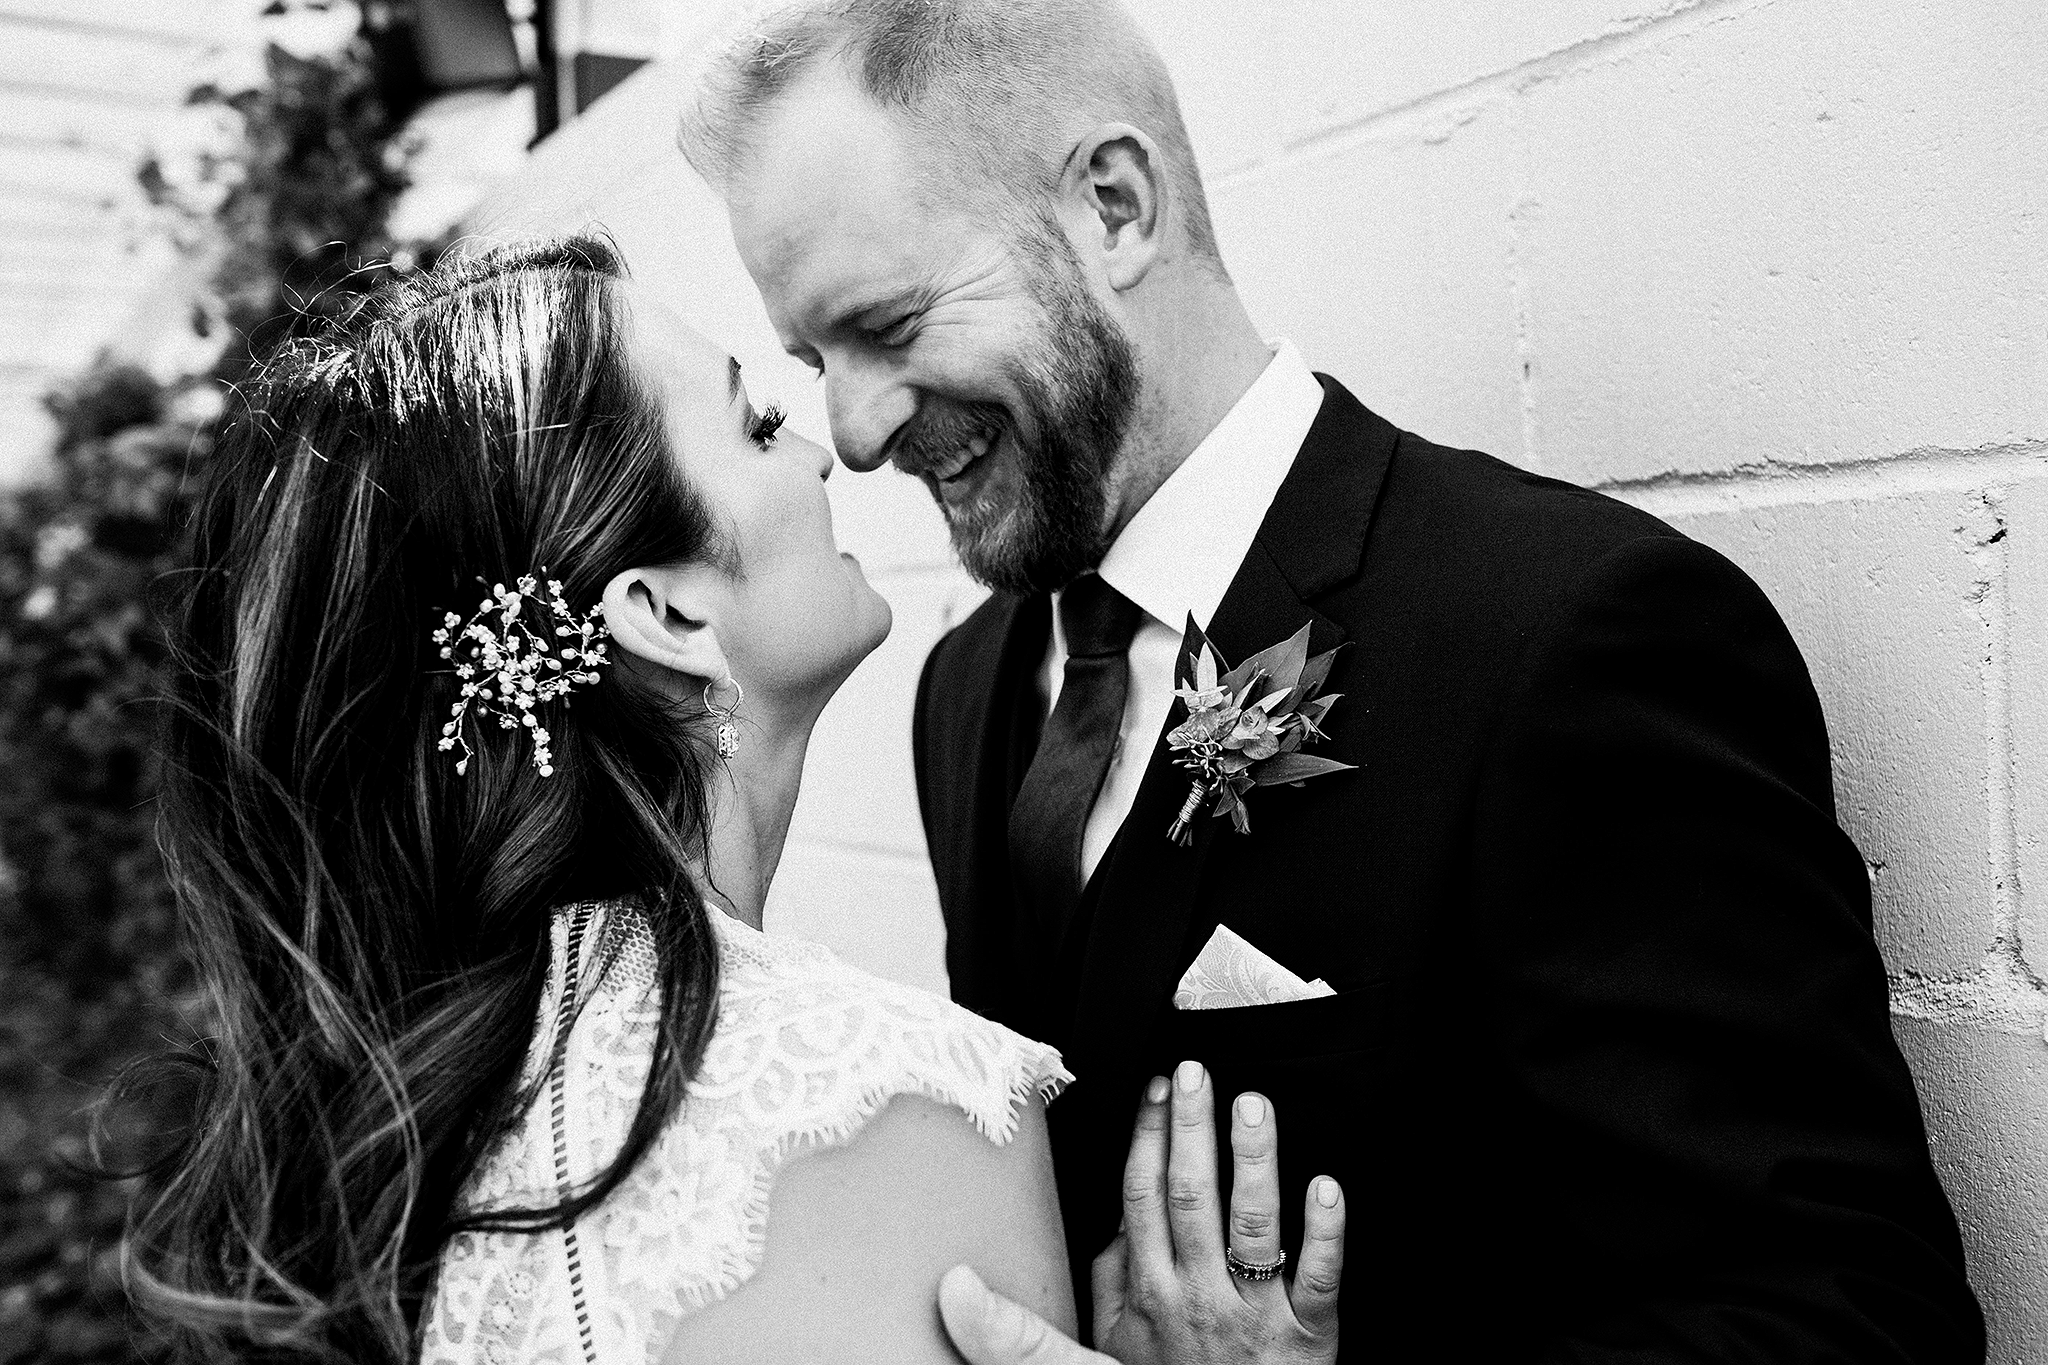 bride/groom candid intimate laughing picture | the ivy house milwaukee wedding photographer | chrissy deming